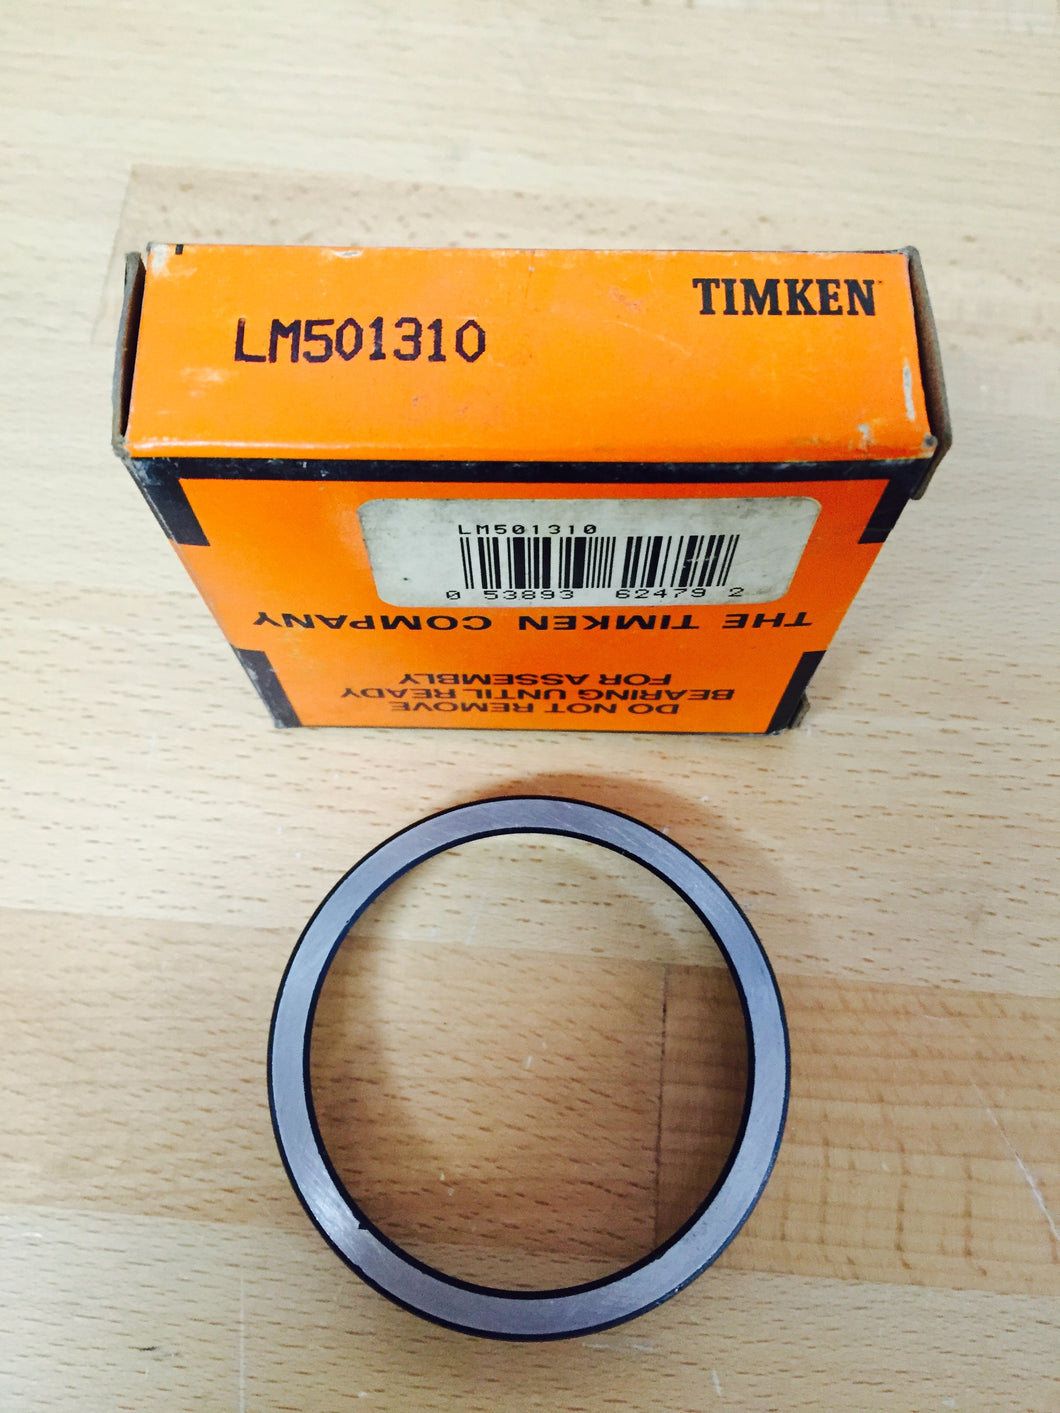 LM501310 Bearing Cup